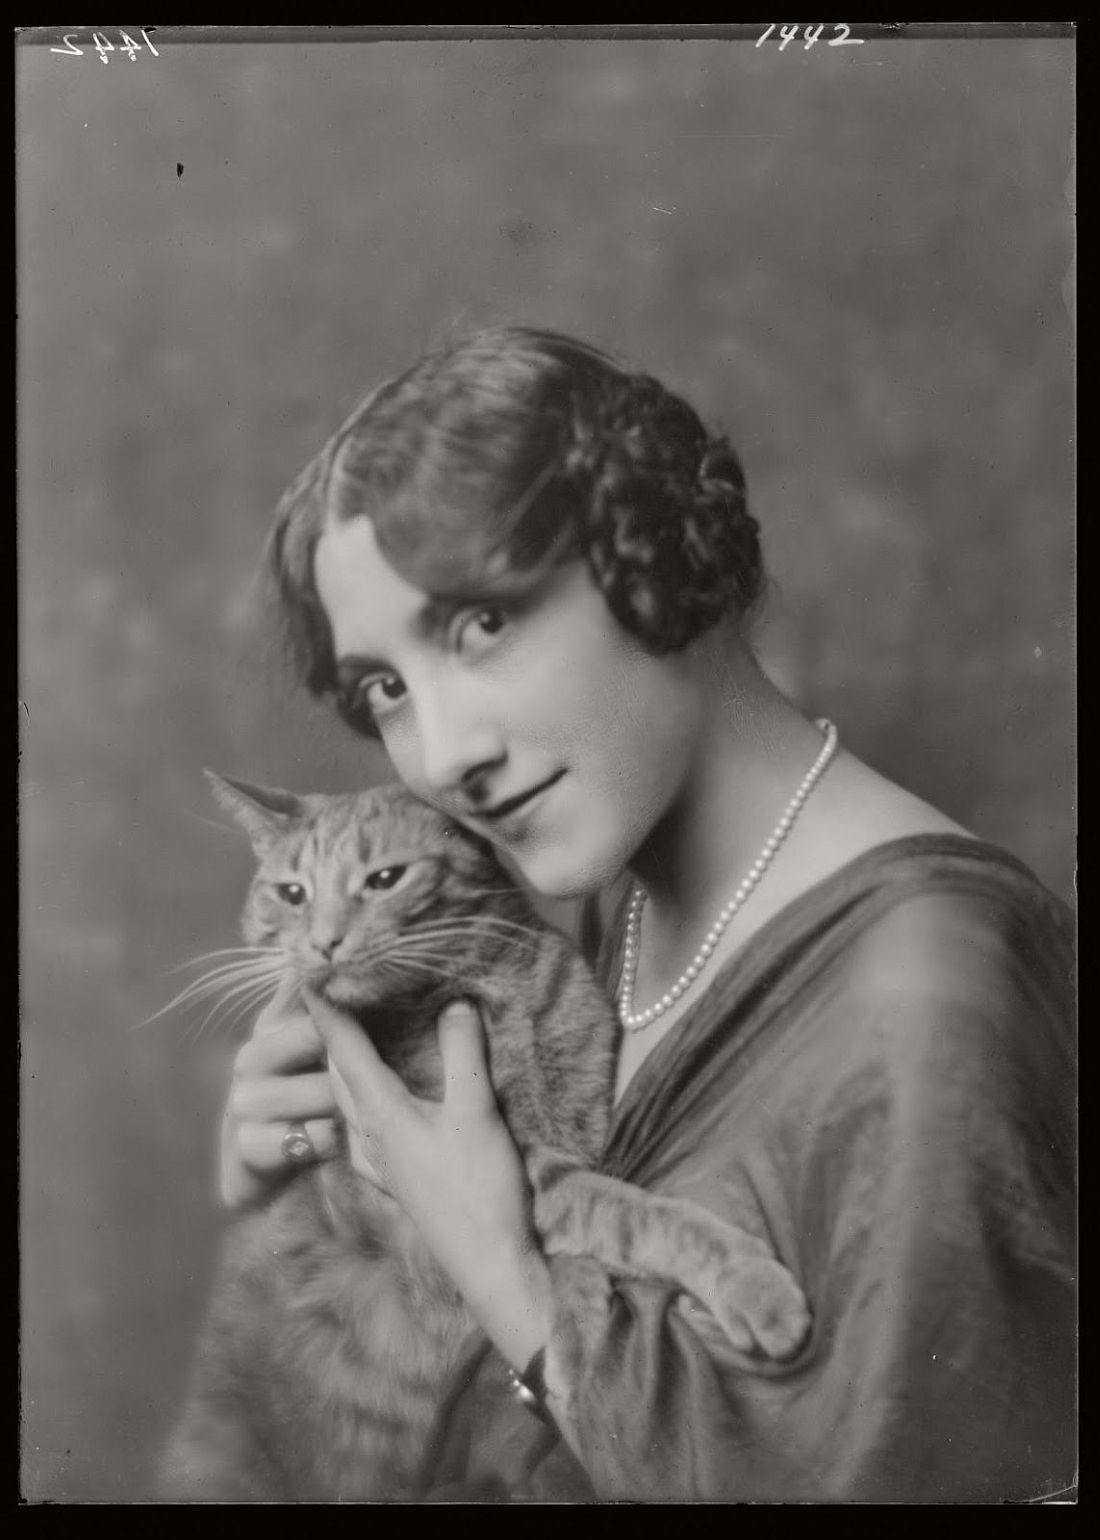 arnold-genthe-1910s-vintage-studio-portraits-of-girls-with-cat-19